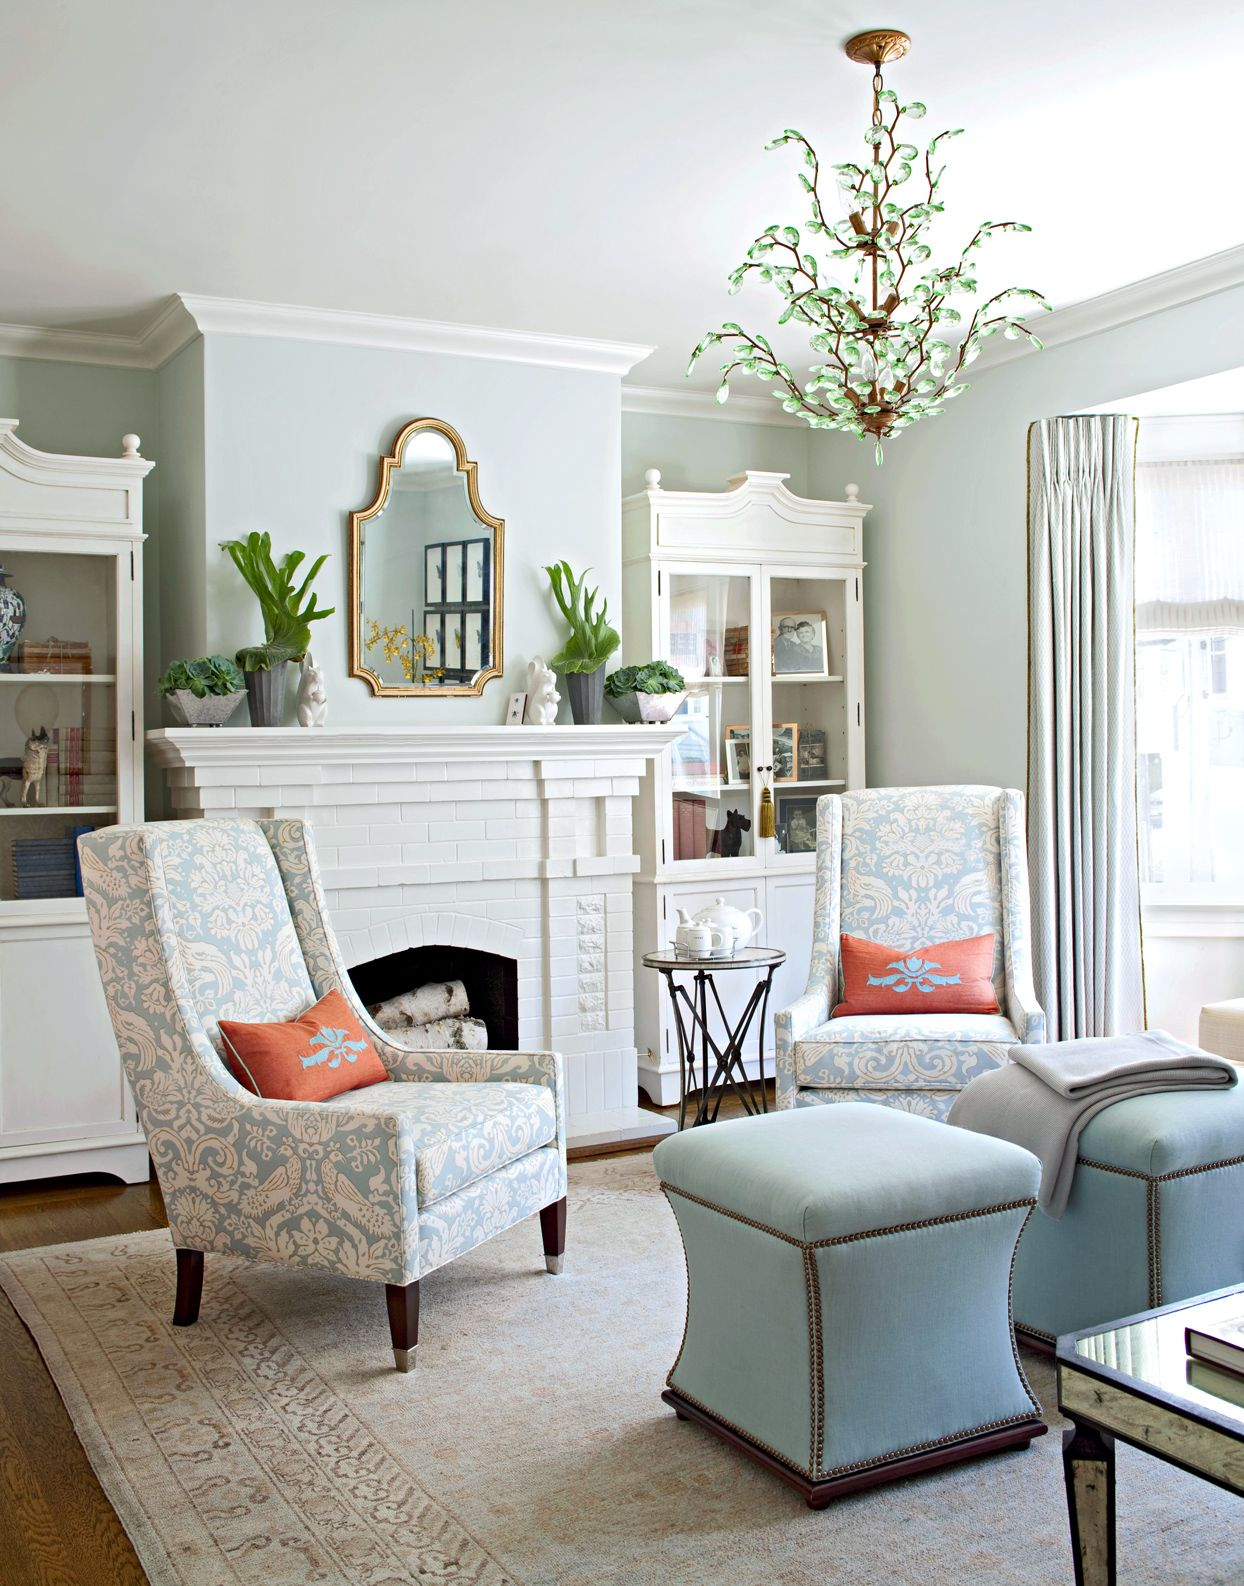 Easy Ways To Add Color To Your Living Room Traditional Style Living Room Decor Traditional Style Living Room Living Room Color Schemes